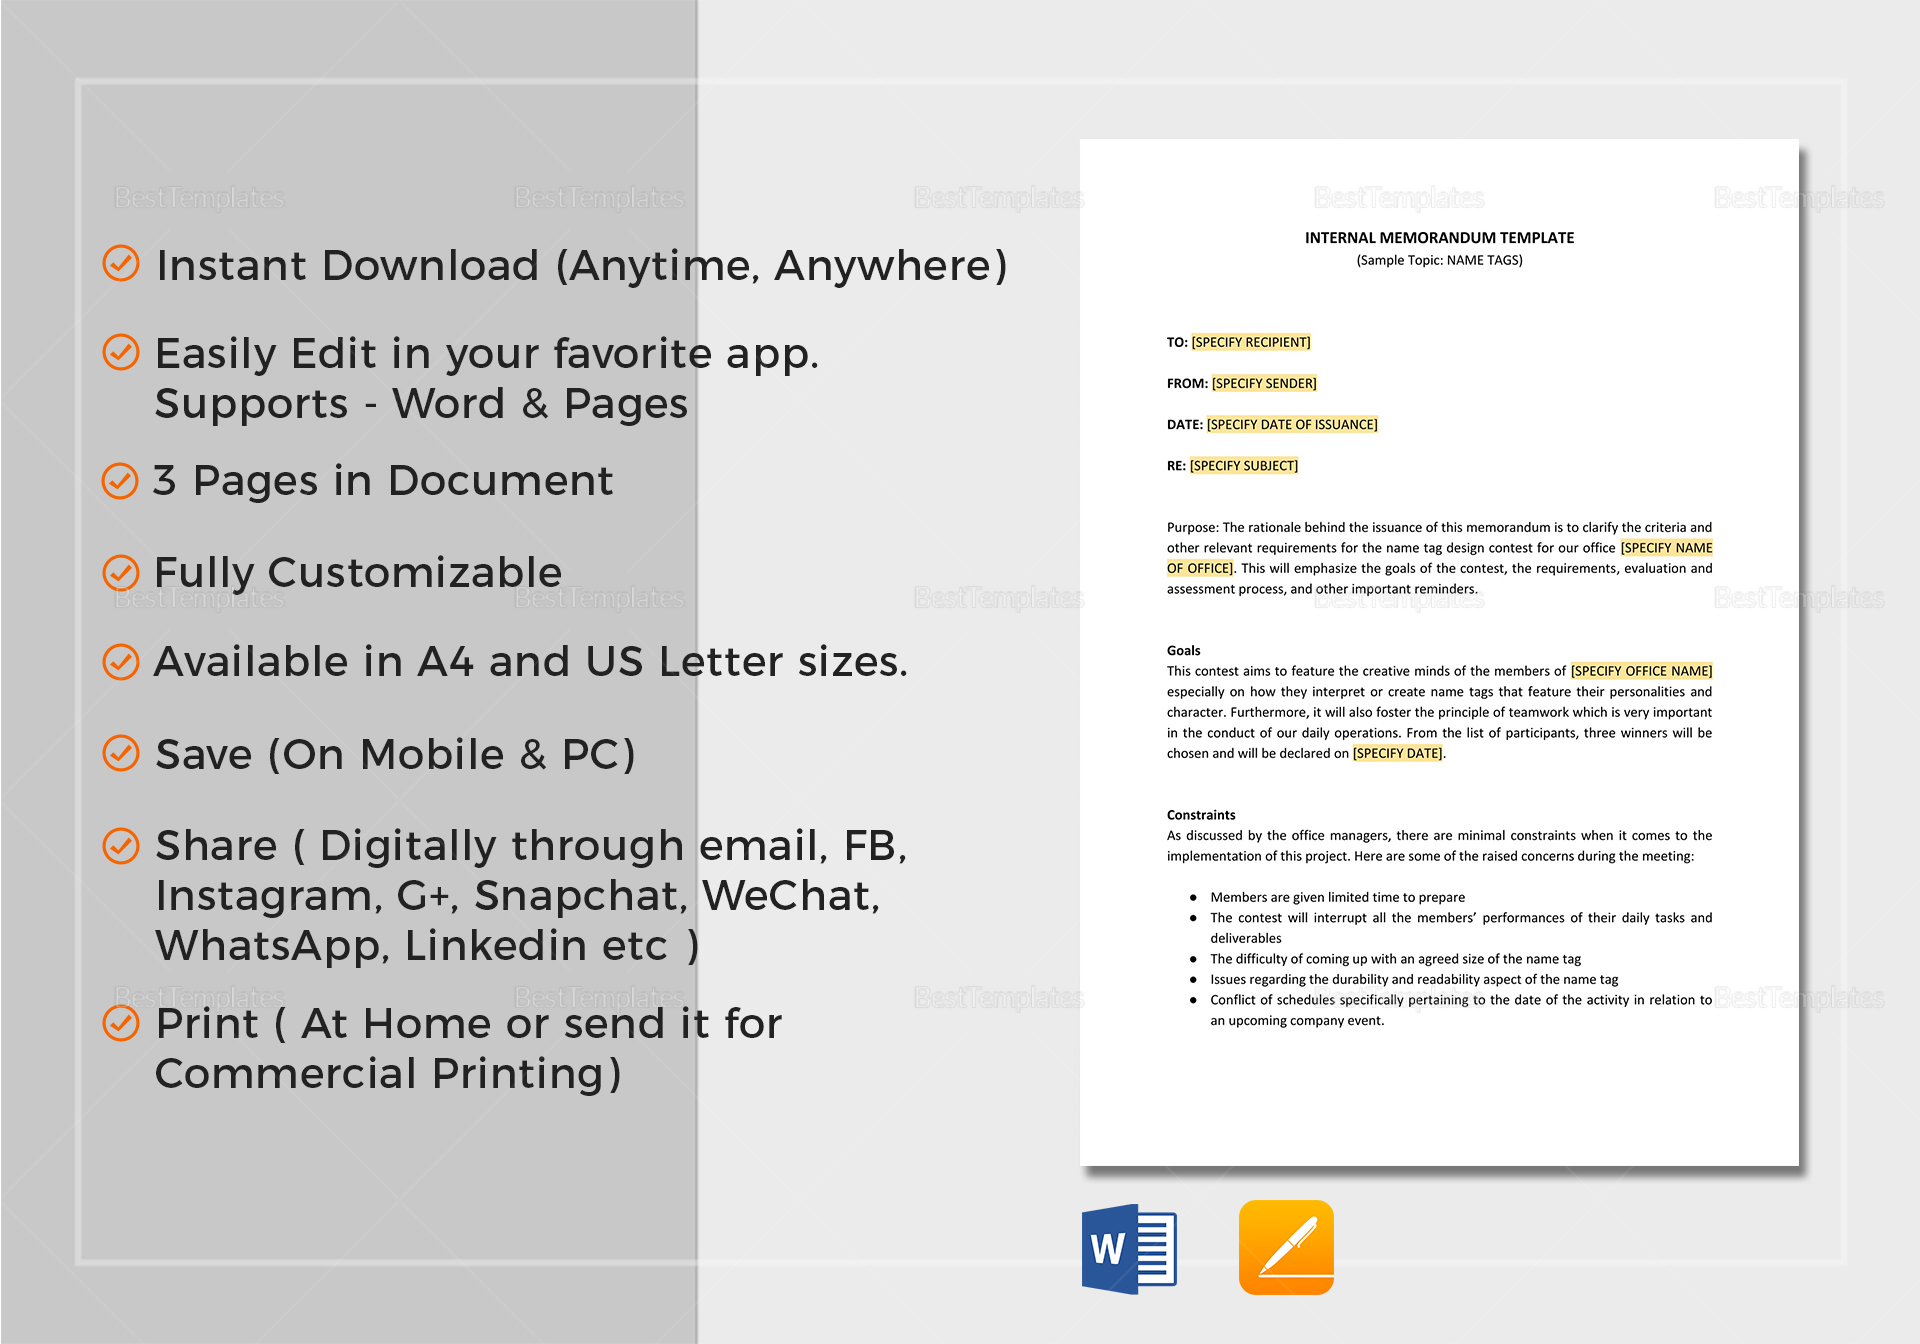 Internal Memo Template in Word, Google Docs, Apple Pages